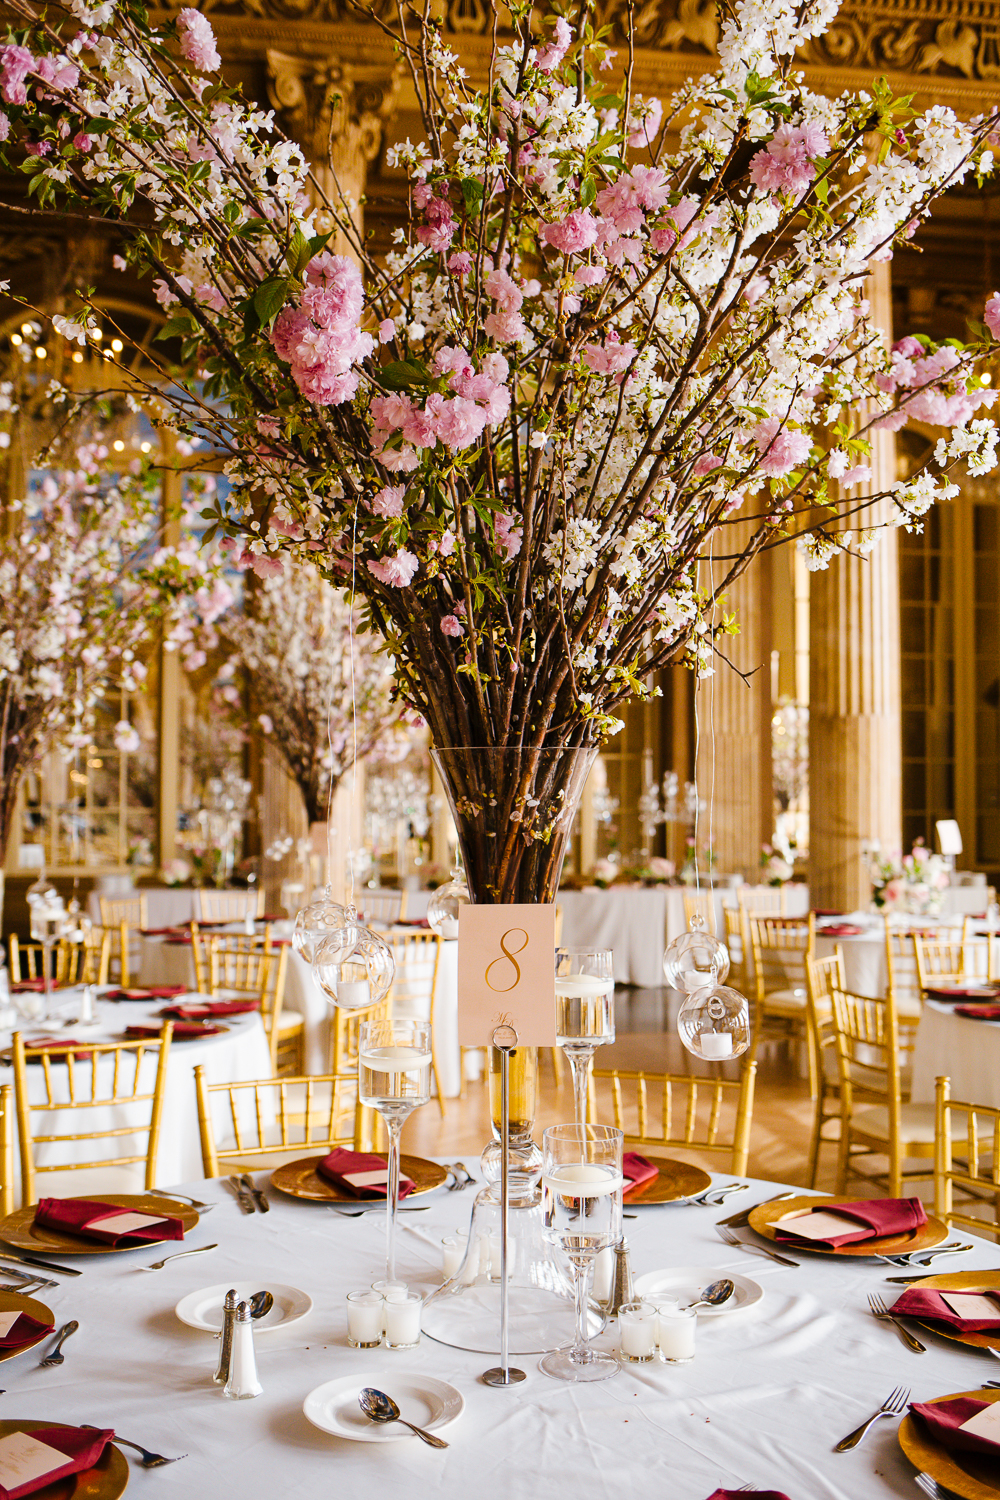 Tablescape at a wedding reception in Syracuse, NY. The table is labled as table 8 and has cherry blossoms as the centerpiece.